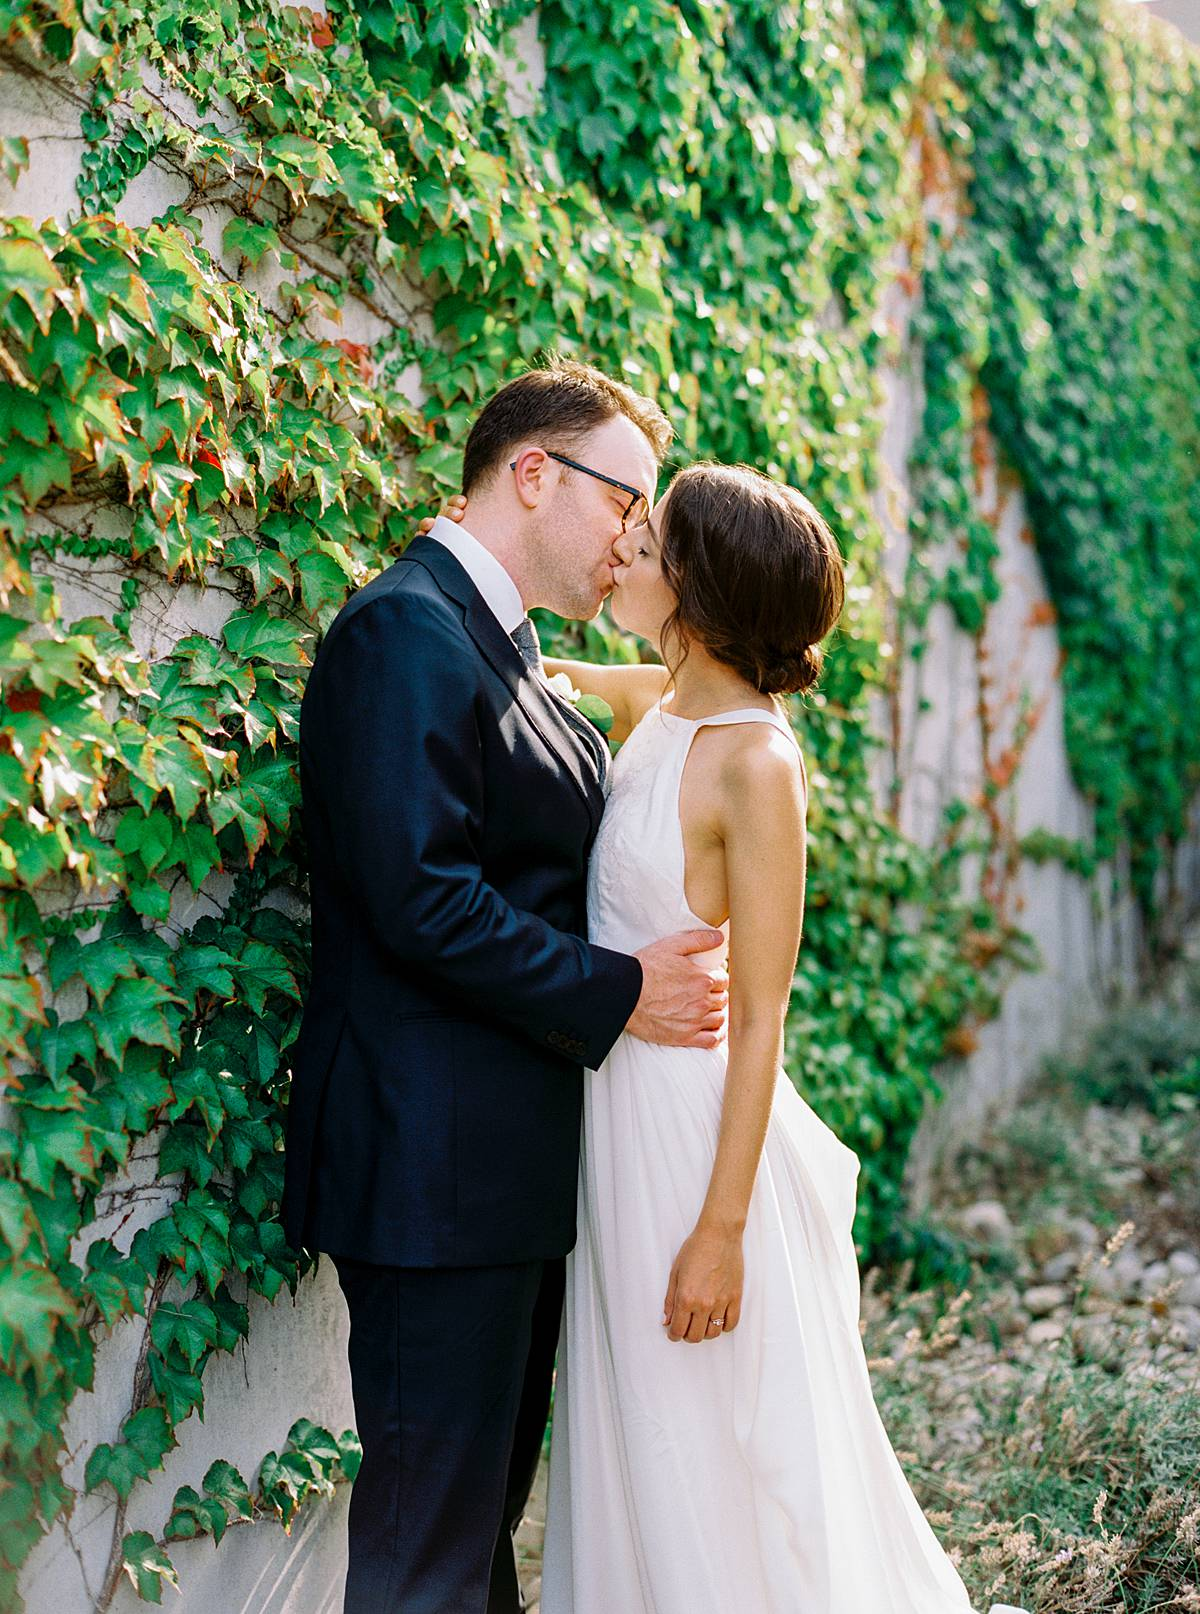 northern michigan wedding portrait on kodak film at brengman brothers winery in traverse city michigan by brian d smith photography